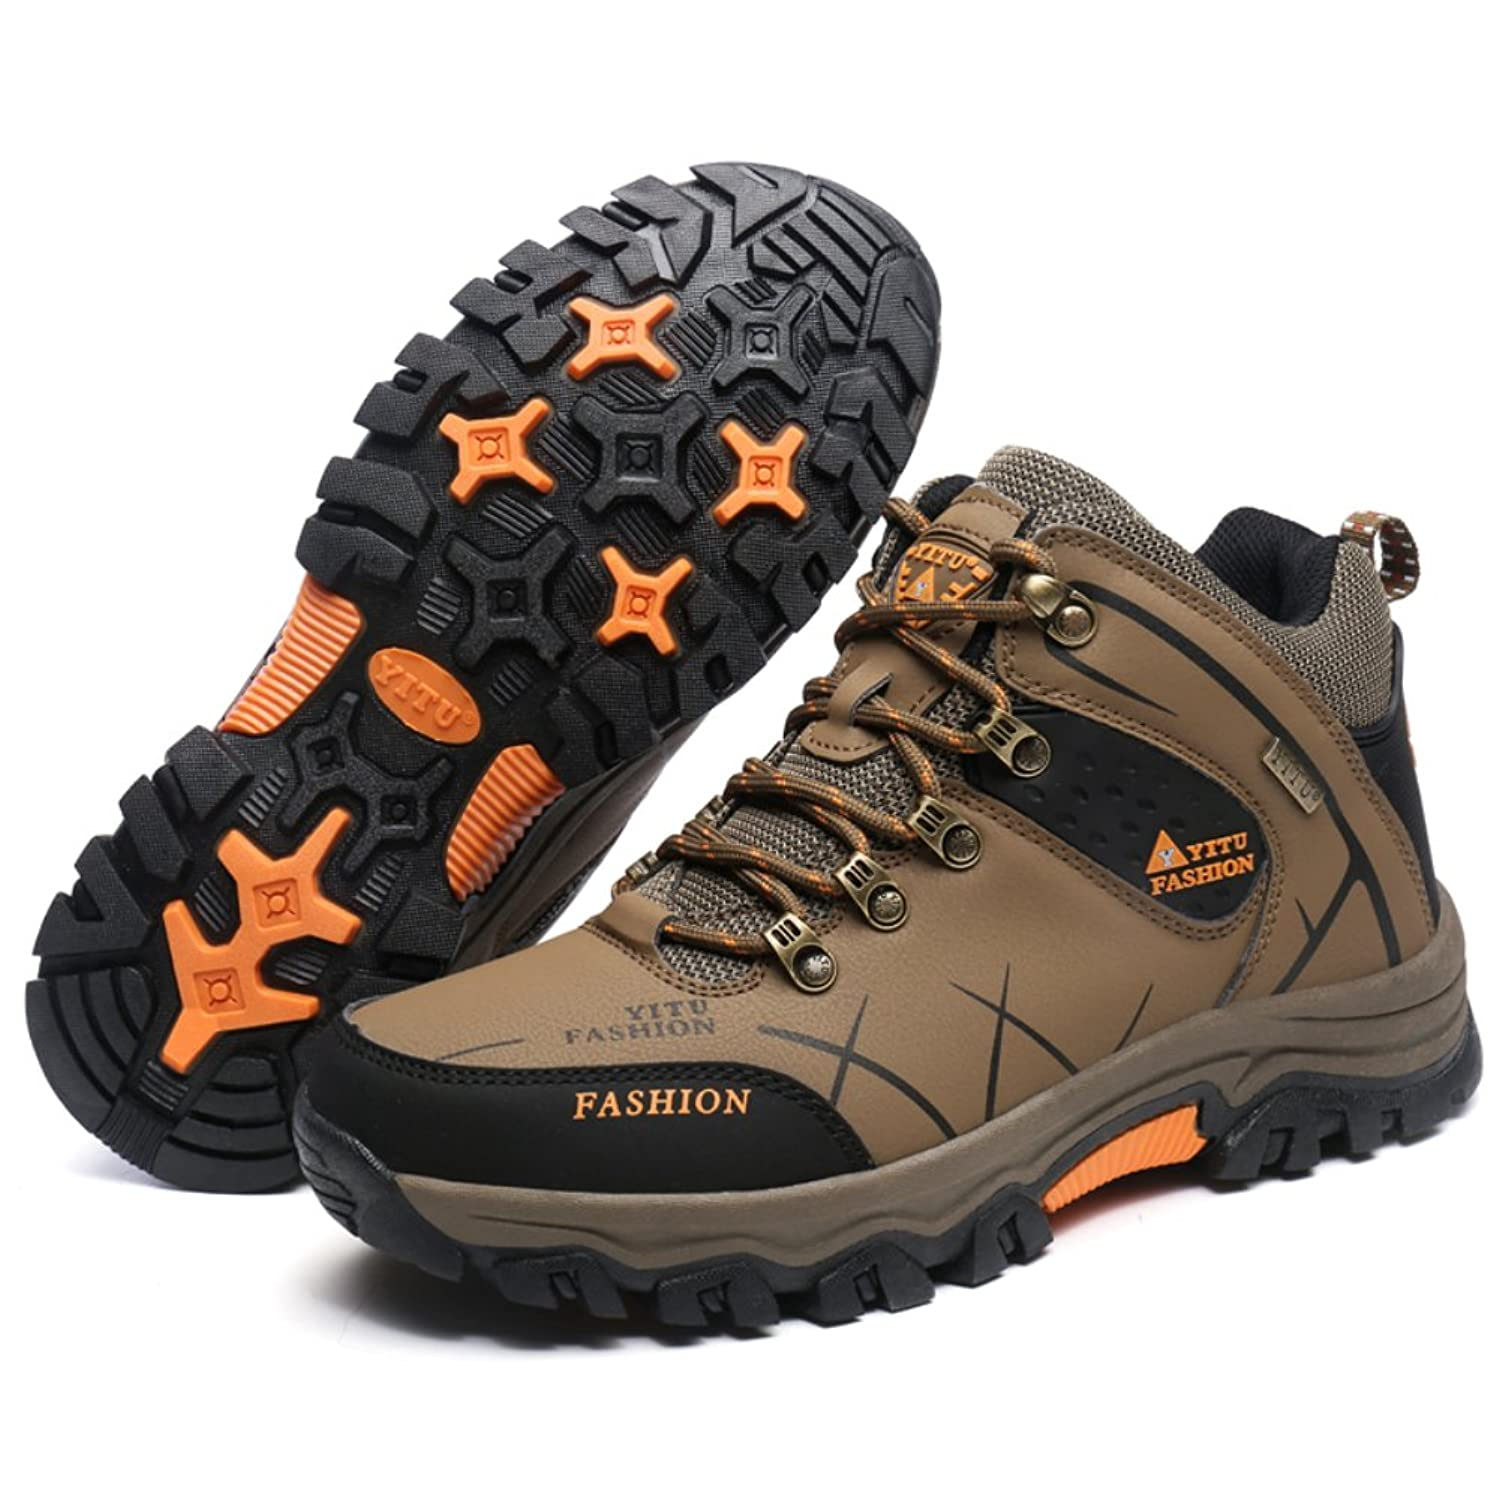 FOBEY Mens Outdoor Climbing Sport Walking Sneakers Hunting Athletic Shoes  Warm Cotton Shoes: Amazon.co.uk: Shoes & Bags